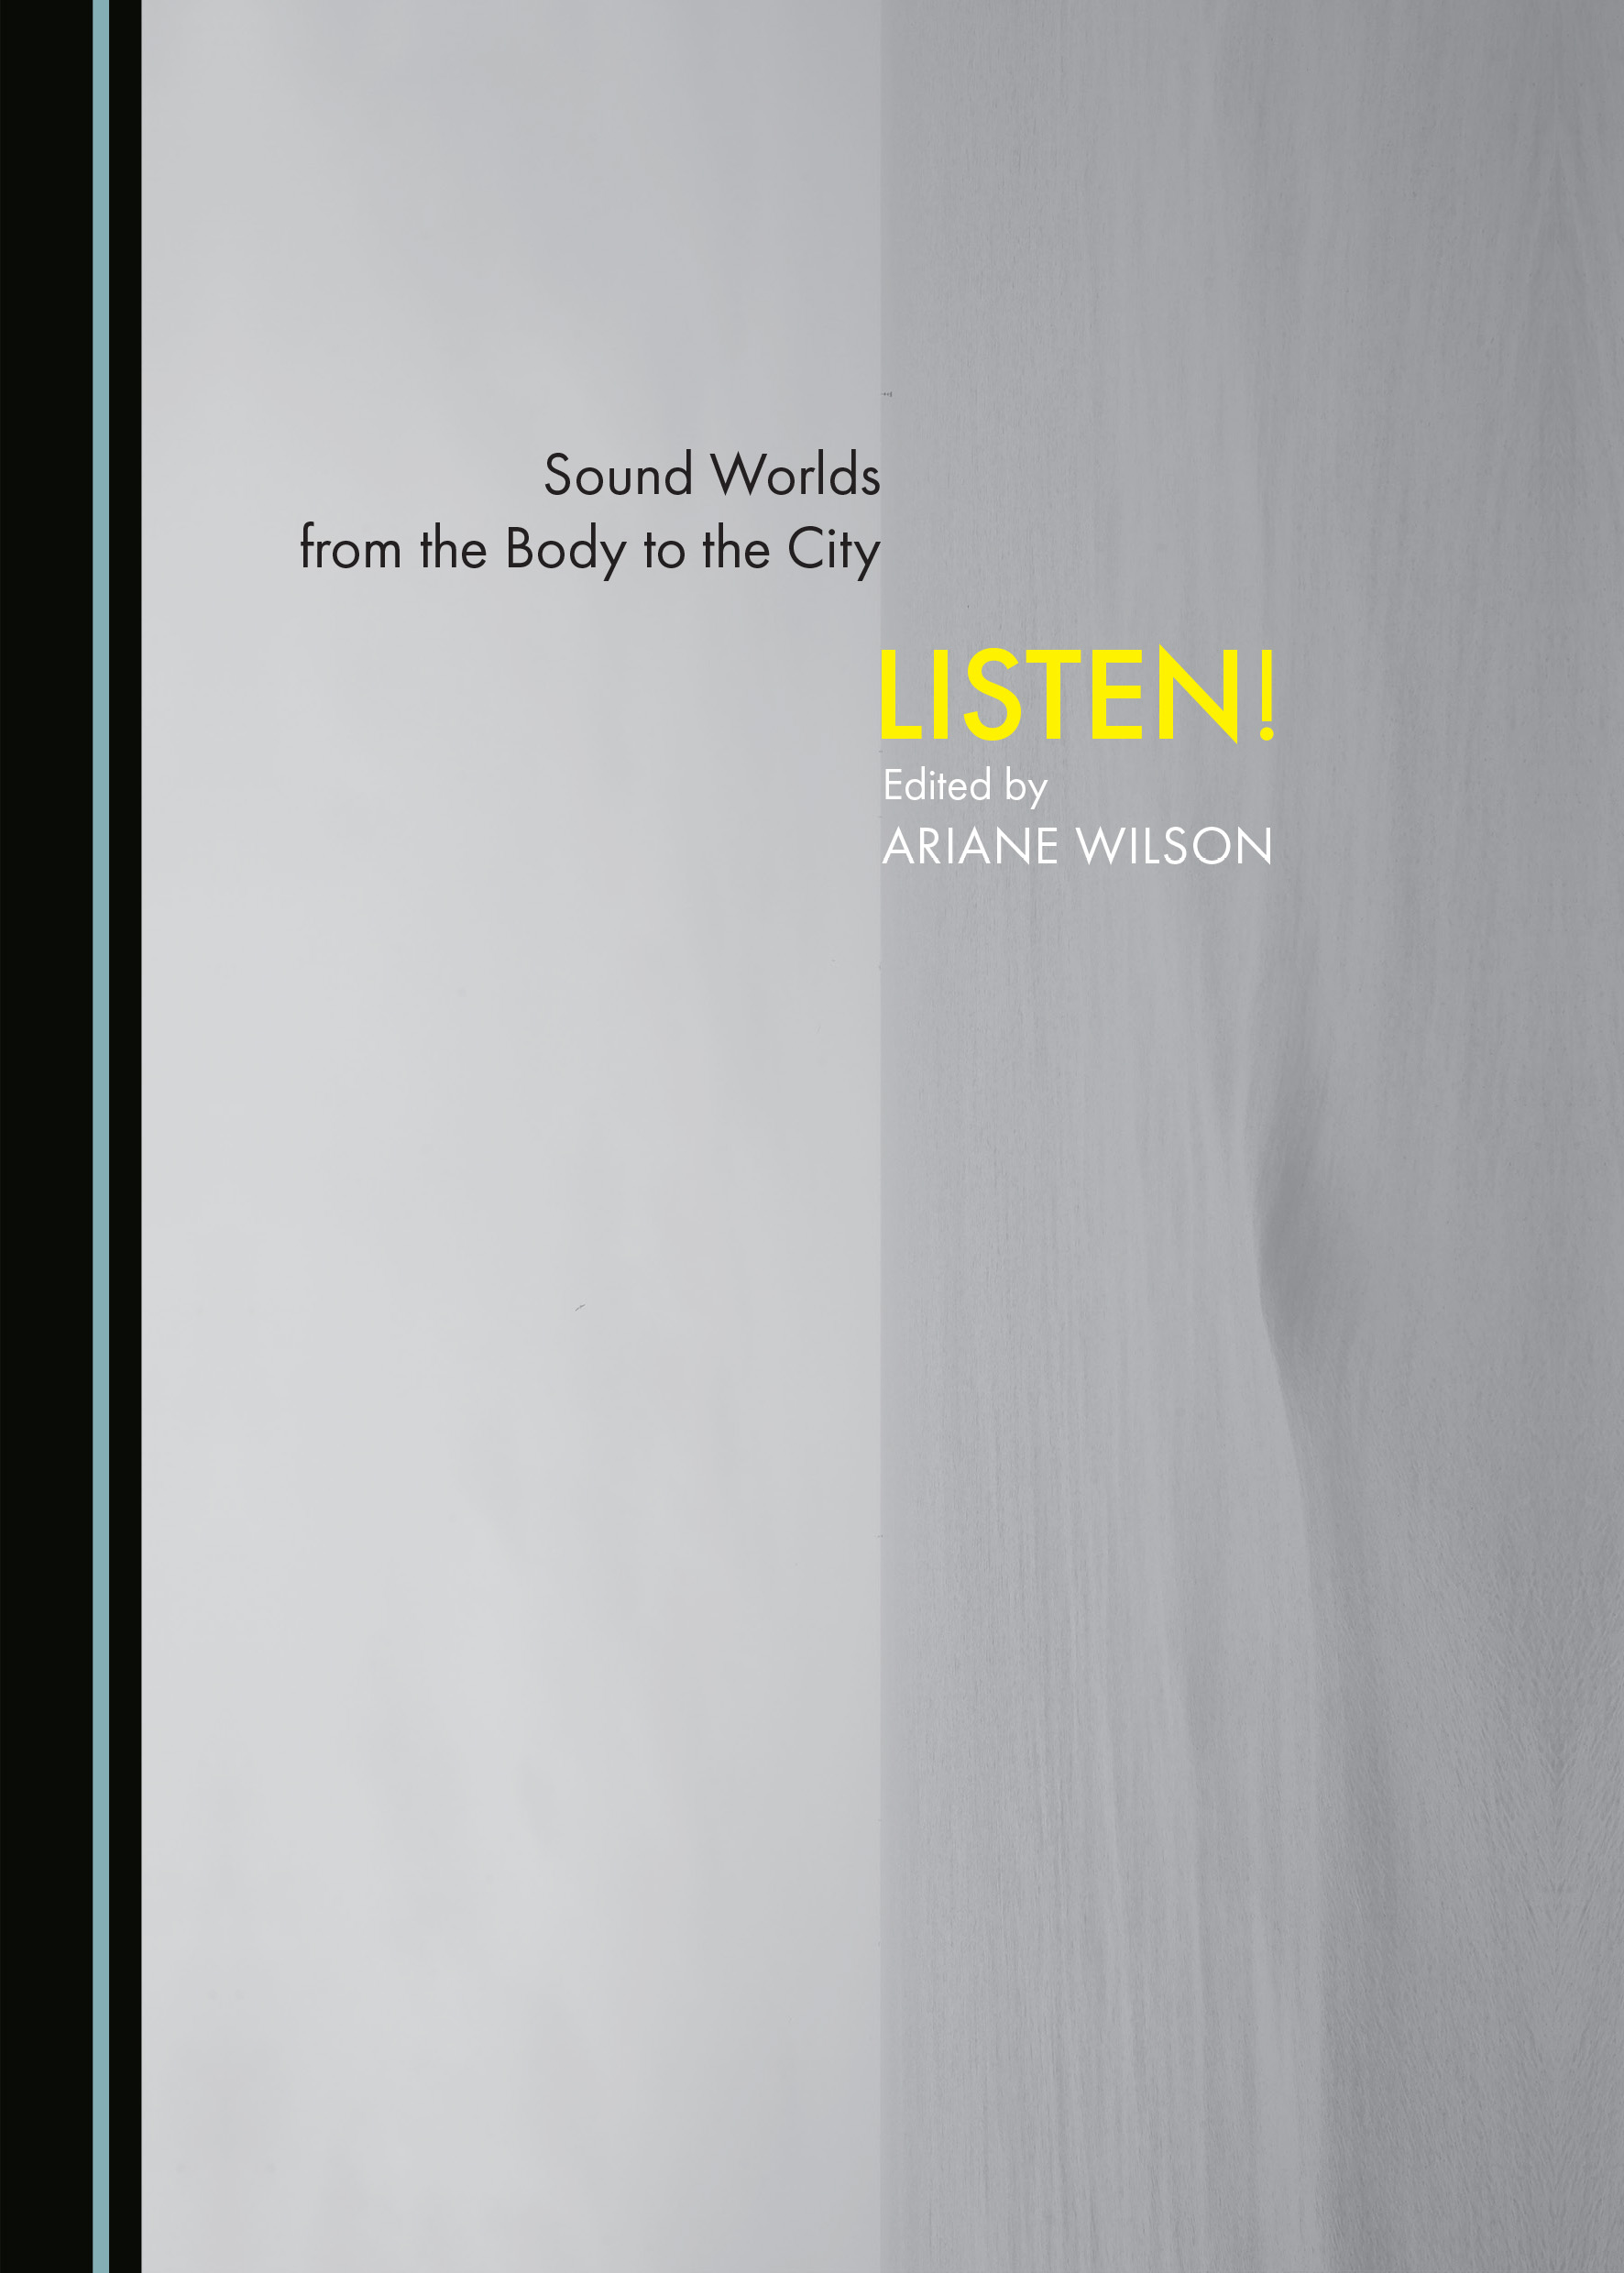 Sound Worlds from the Body to the City: Listen!